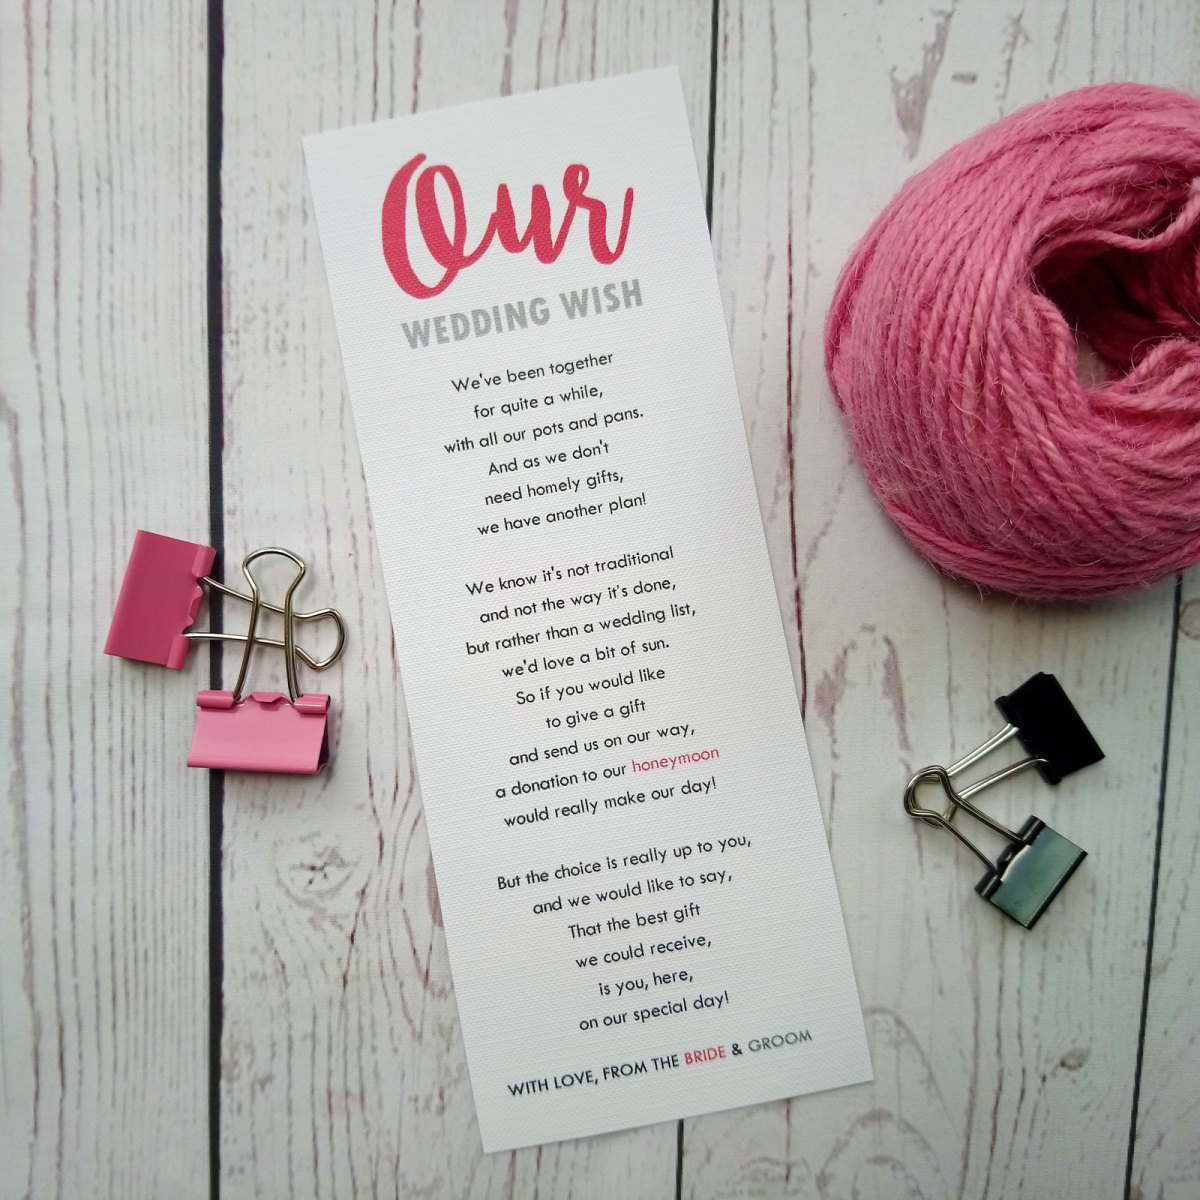 Boy Meets Girl Honeymoon Wish Poem on white textured card